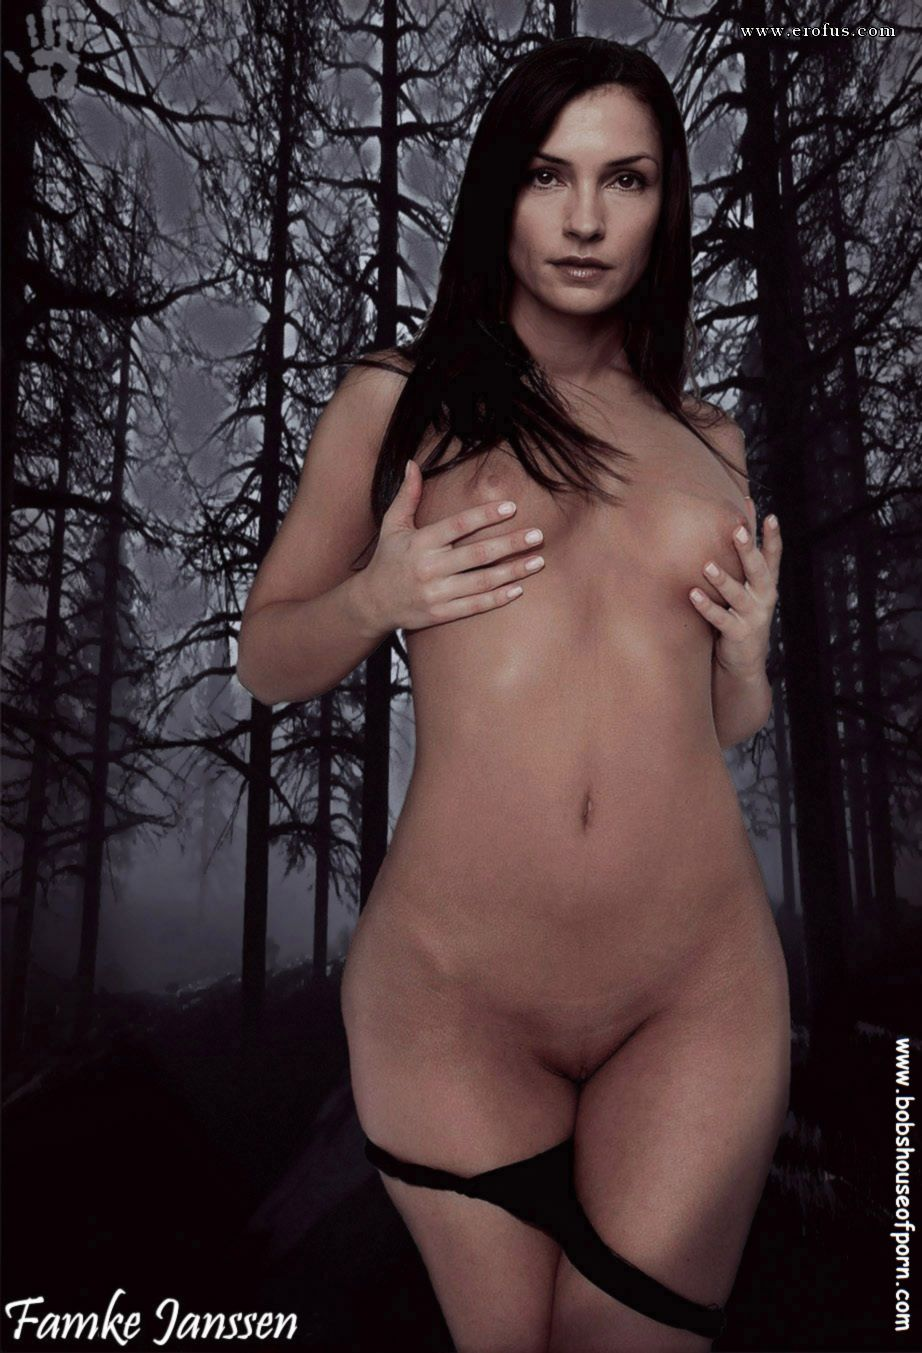 Famke janssen picture porn, hot naked women with humongous boobs